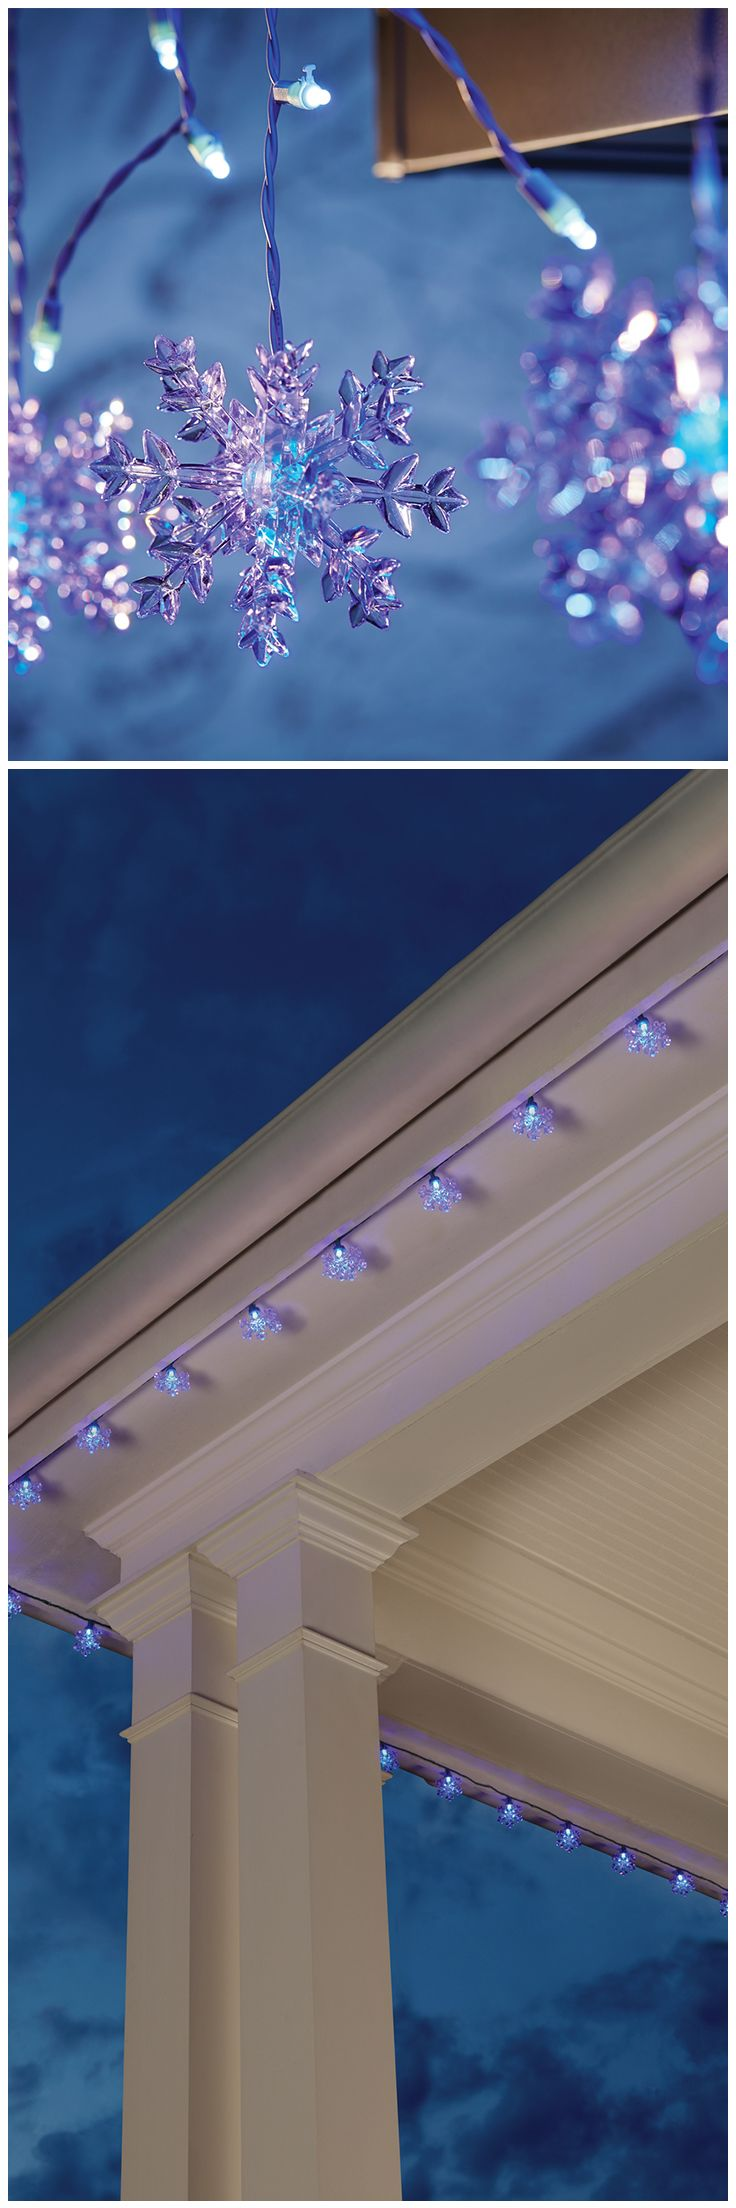 These snowflake LED Christmas lights from The Home Depot change colors, from white to purple, for a charming new holiday look. Of course, we have Christmas lights of all sorts, including icicle lights, net lights, programmable and more. Take a look at all our Christmas lights, and start planning your outdoor holiday display. See these snowflake lights here: http://www.homedepot.com/p/Home-Accents-Holiday-15-Light-LED-White-to-Blue-Color-Changing-Snowflake-Light-Set-TY1138-1415/205092322